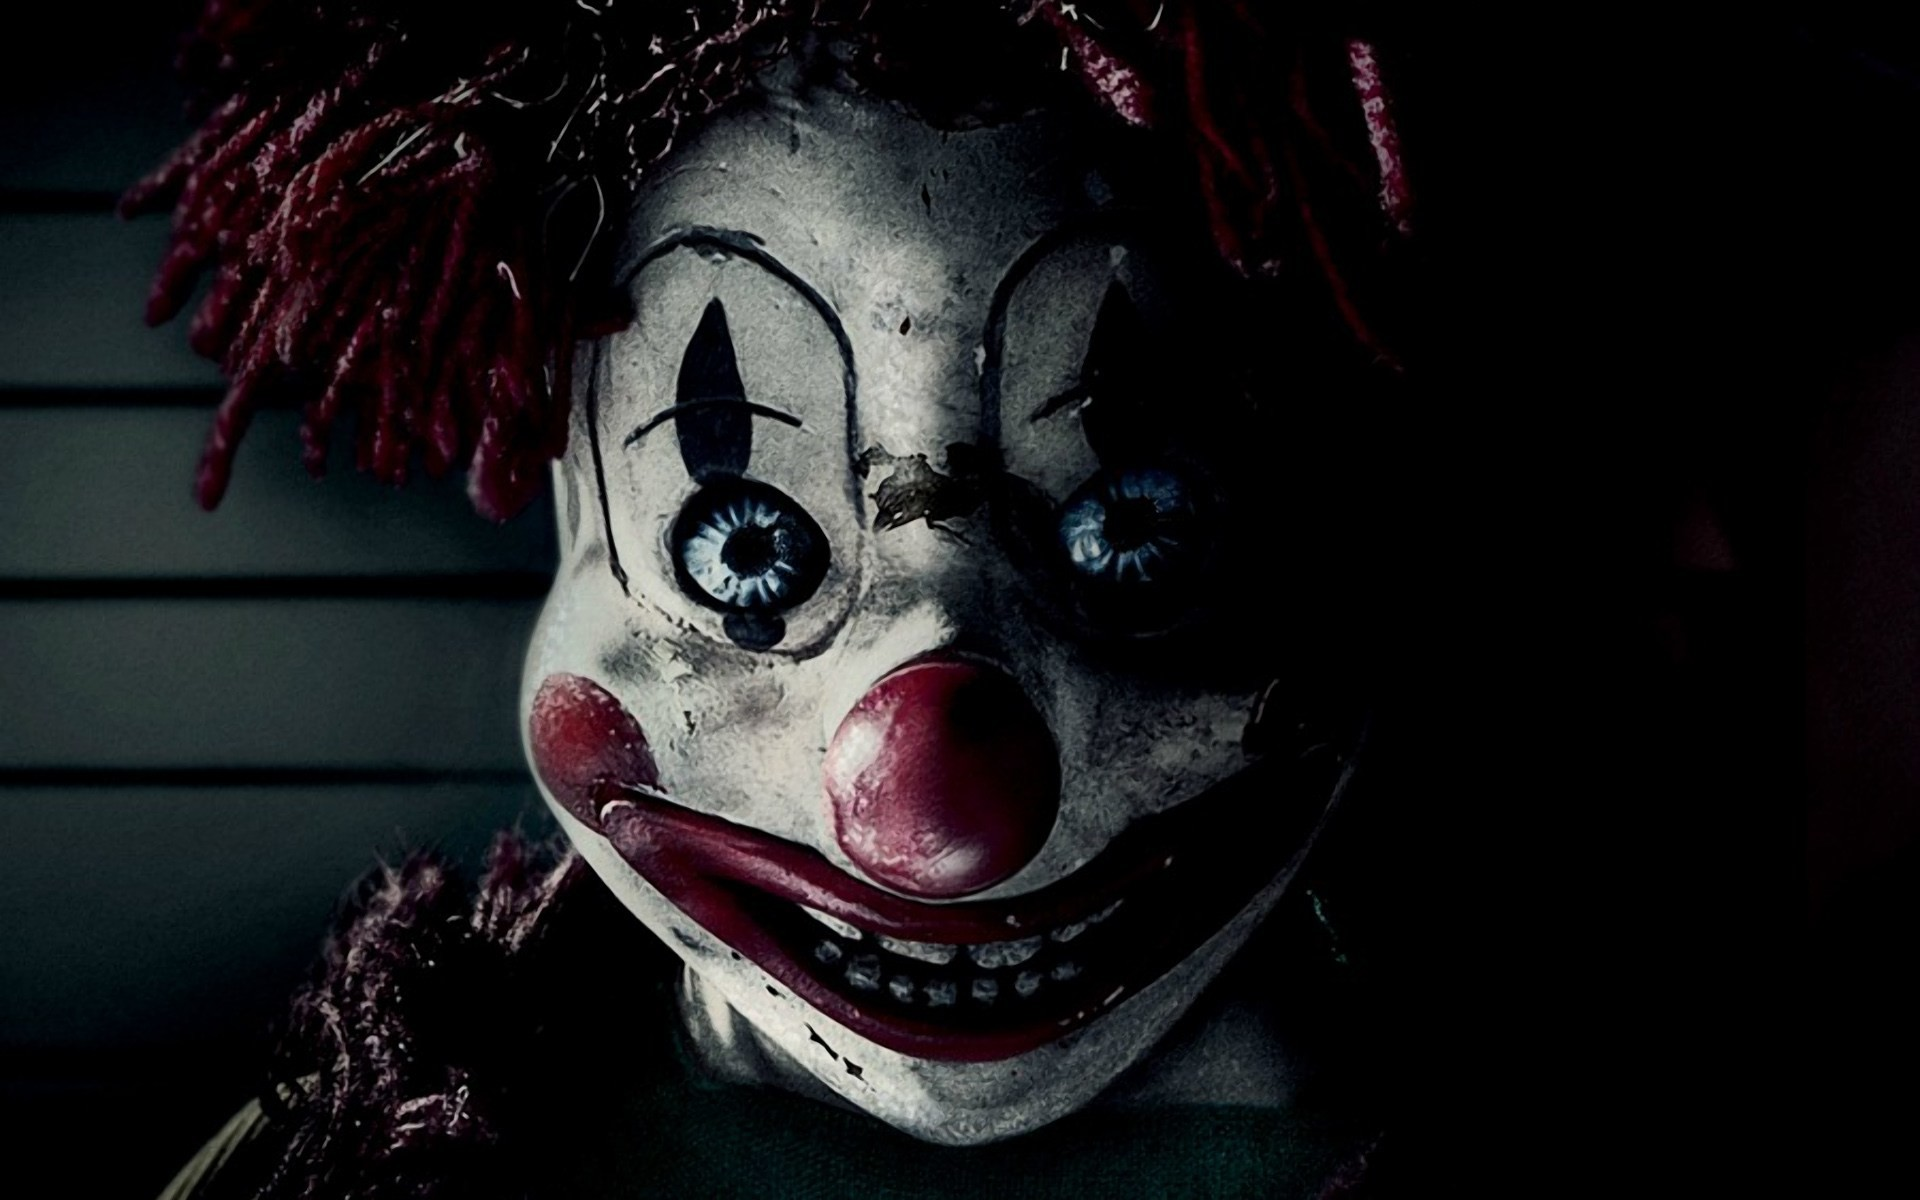 Hd Horror Wallpapers 1080p 61 Images